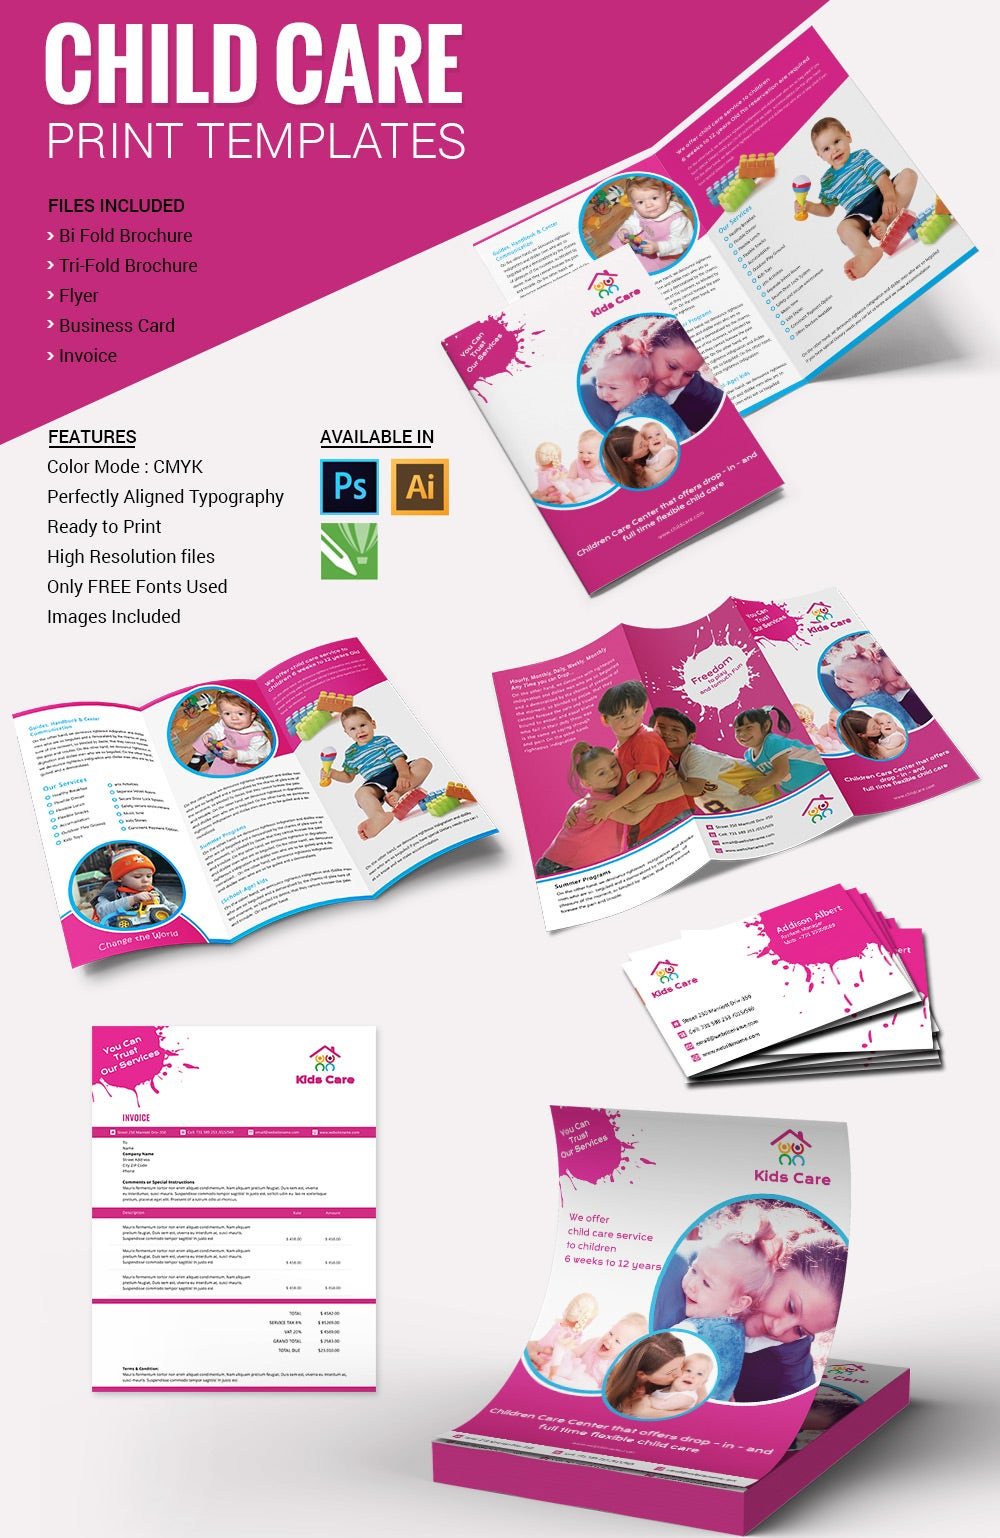 Free Babysitting Templates Beautiful Child Care Brochure Templates